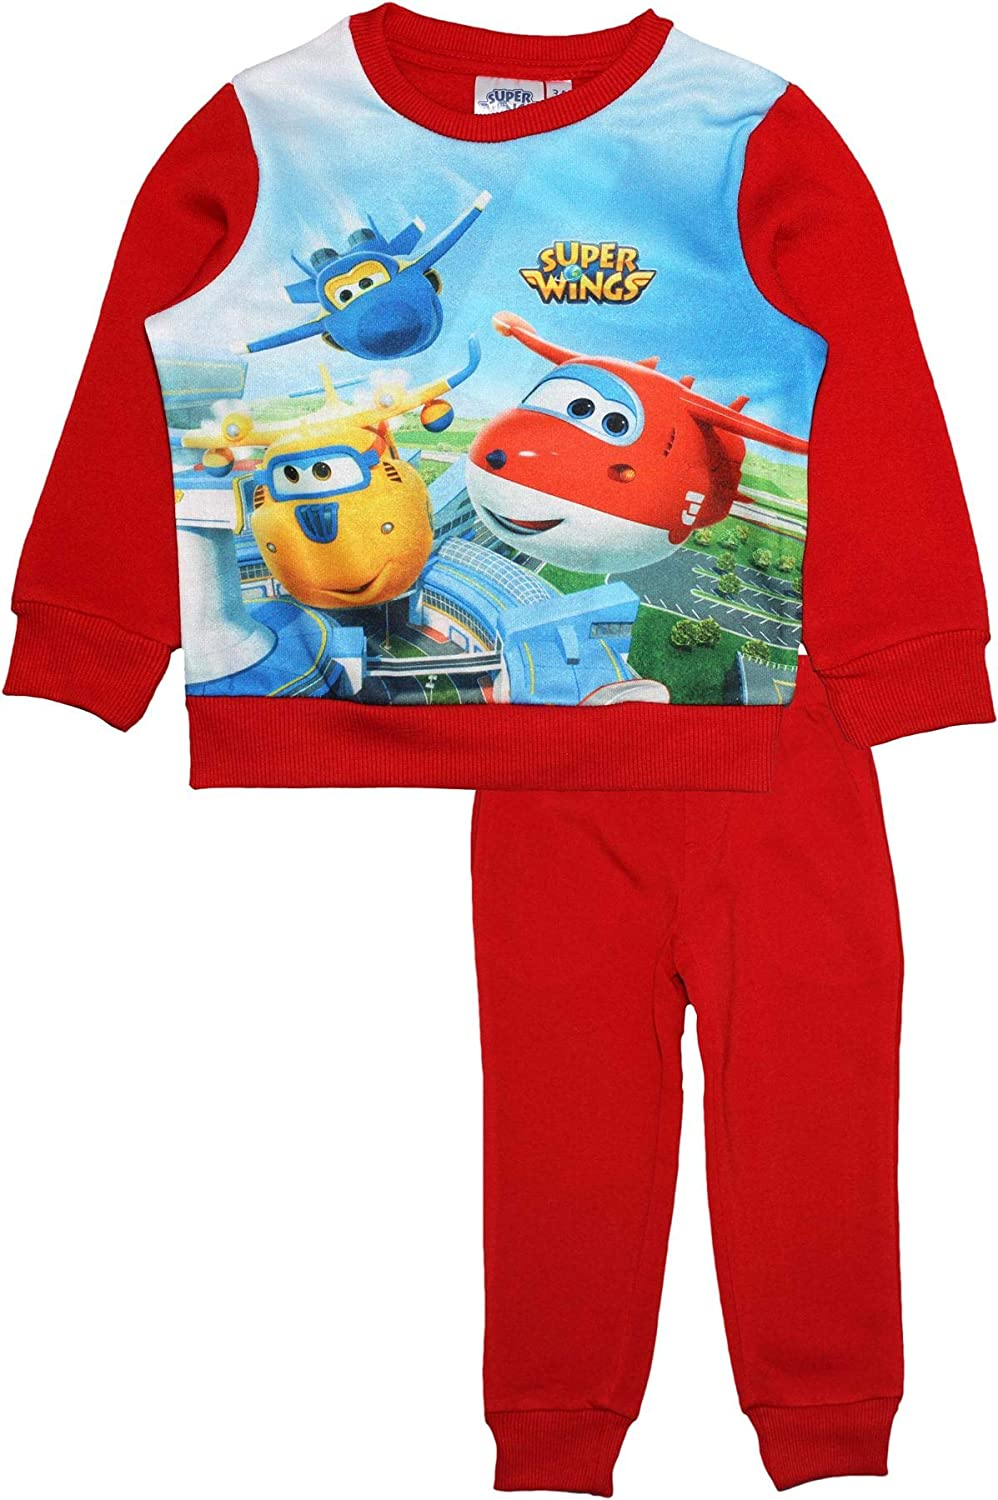 Super Wings Boys Childrens Tracksuit Top and Jogging Bottoms Set